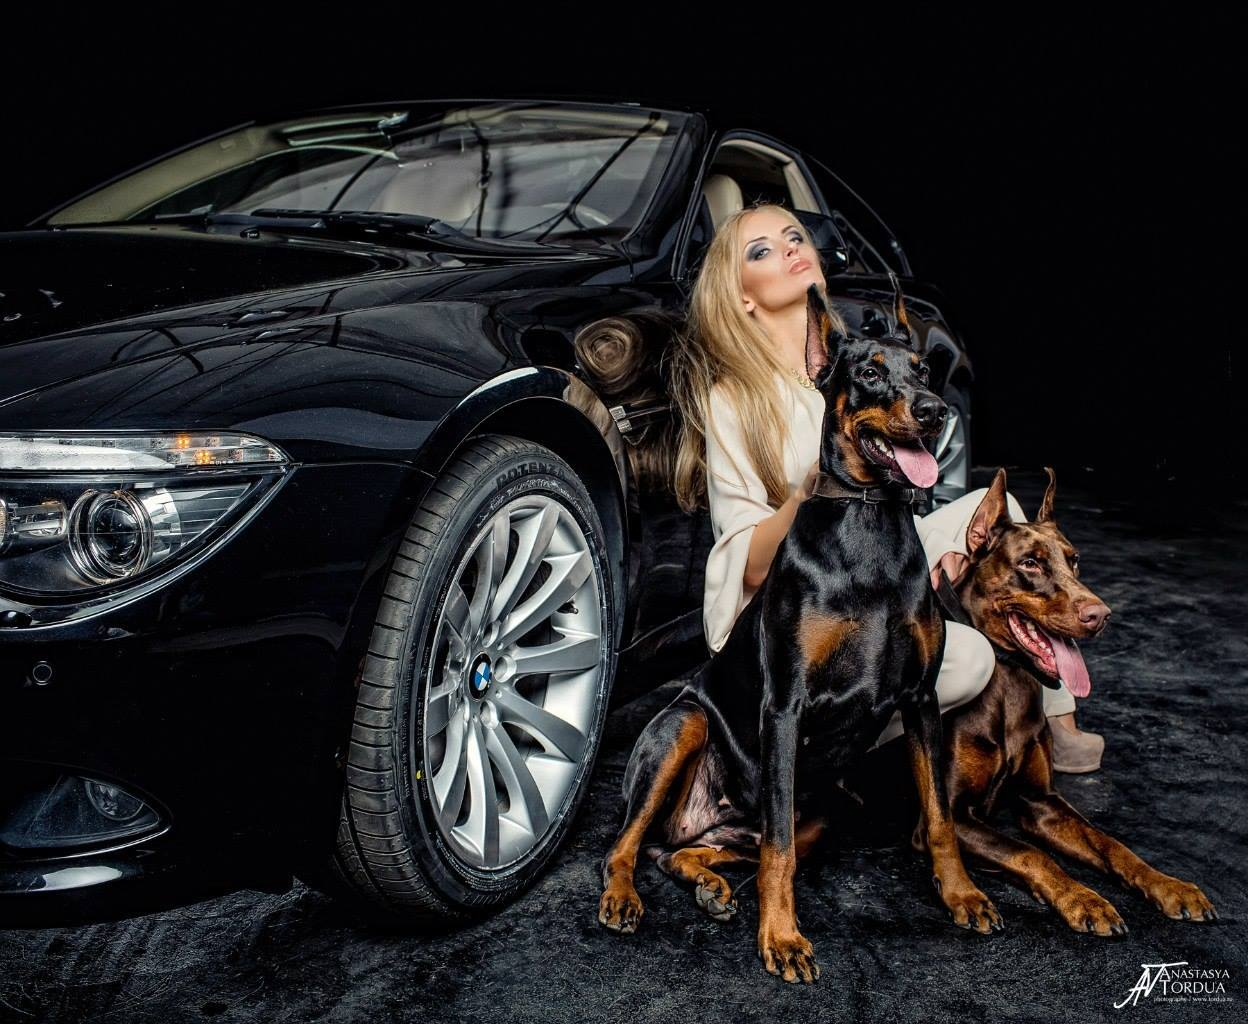 http://s1.cdn.autoevolution.com/images/news/gallery/model-anna-trisvetova-makes-old-bmw-6-series-look-gangsta-photo-gallery_12.jpg